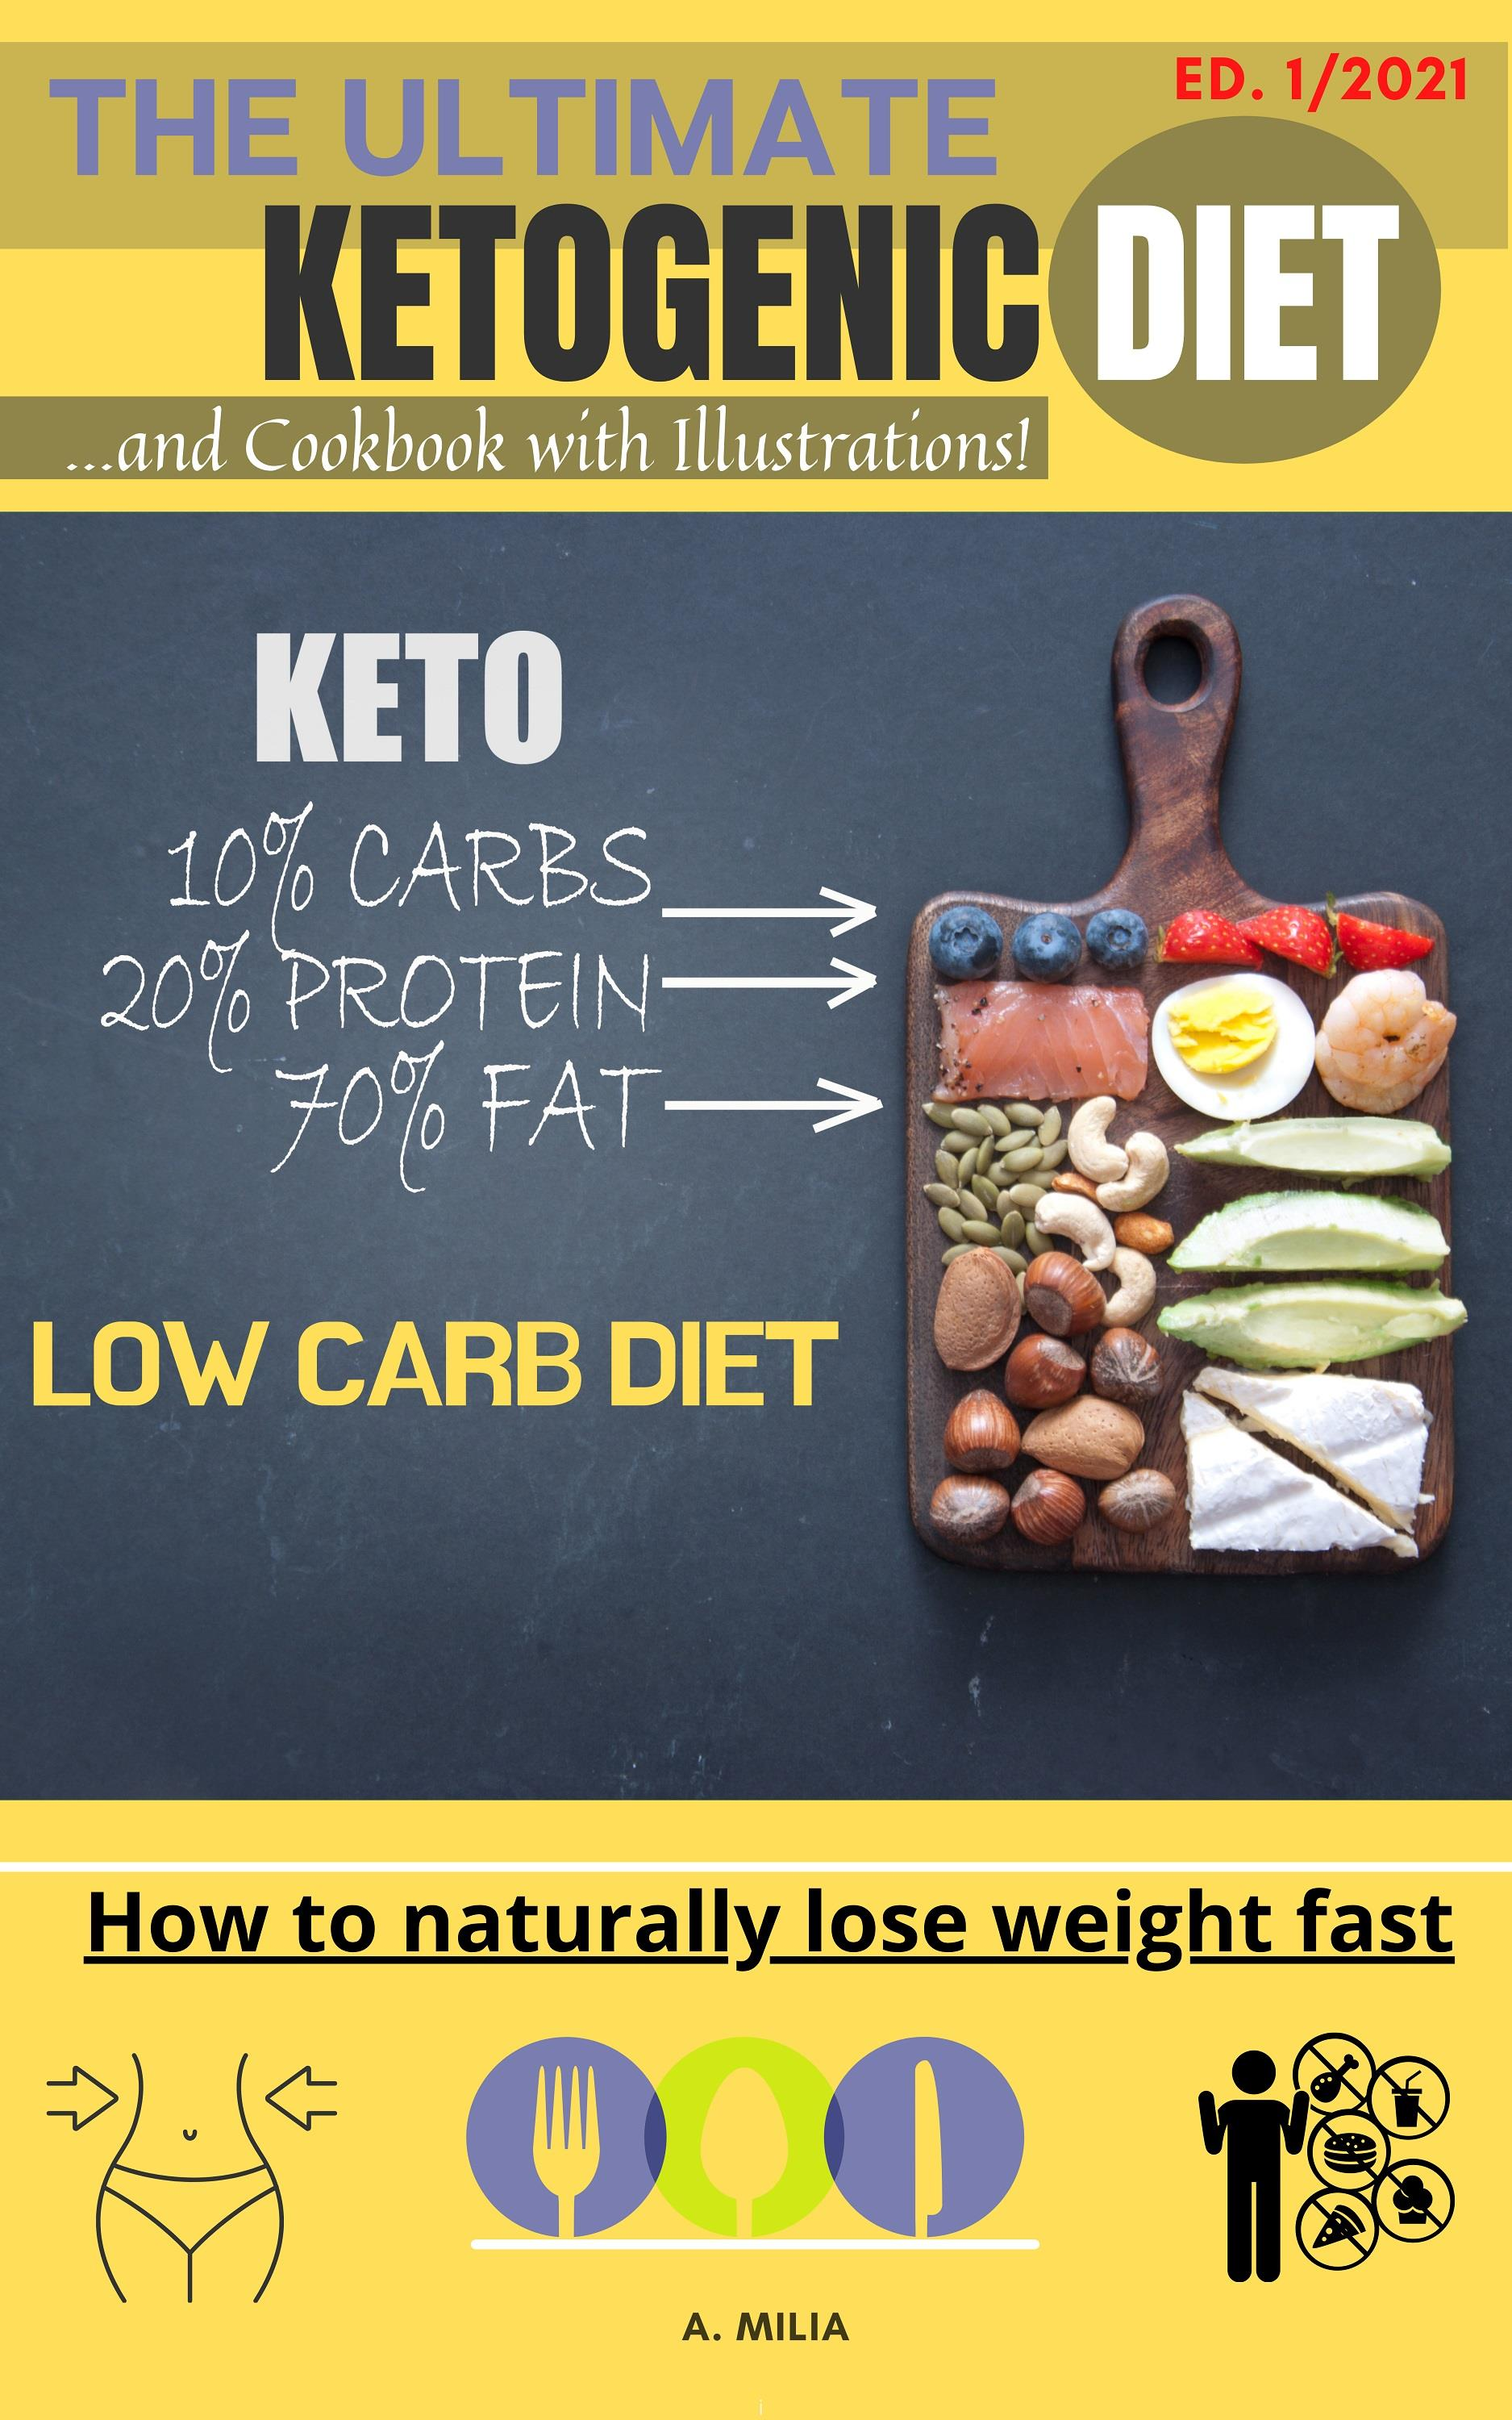 The ultimate ketogenic diet...and cookbook with illustrations!